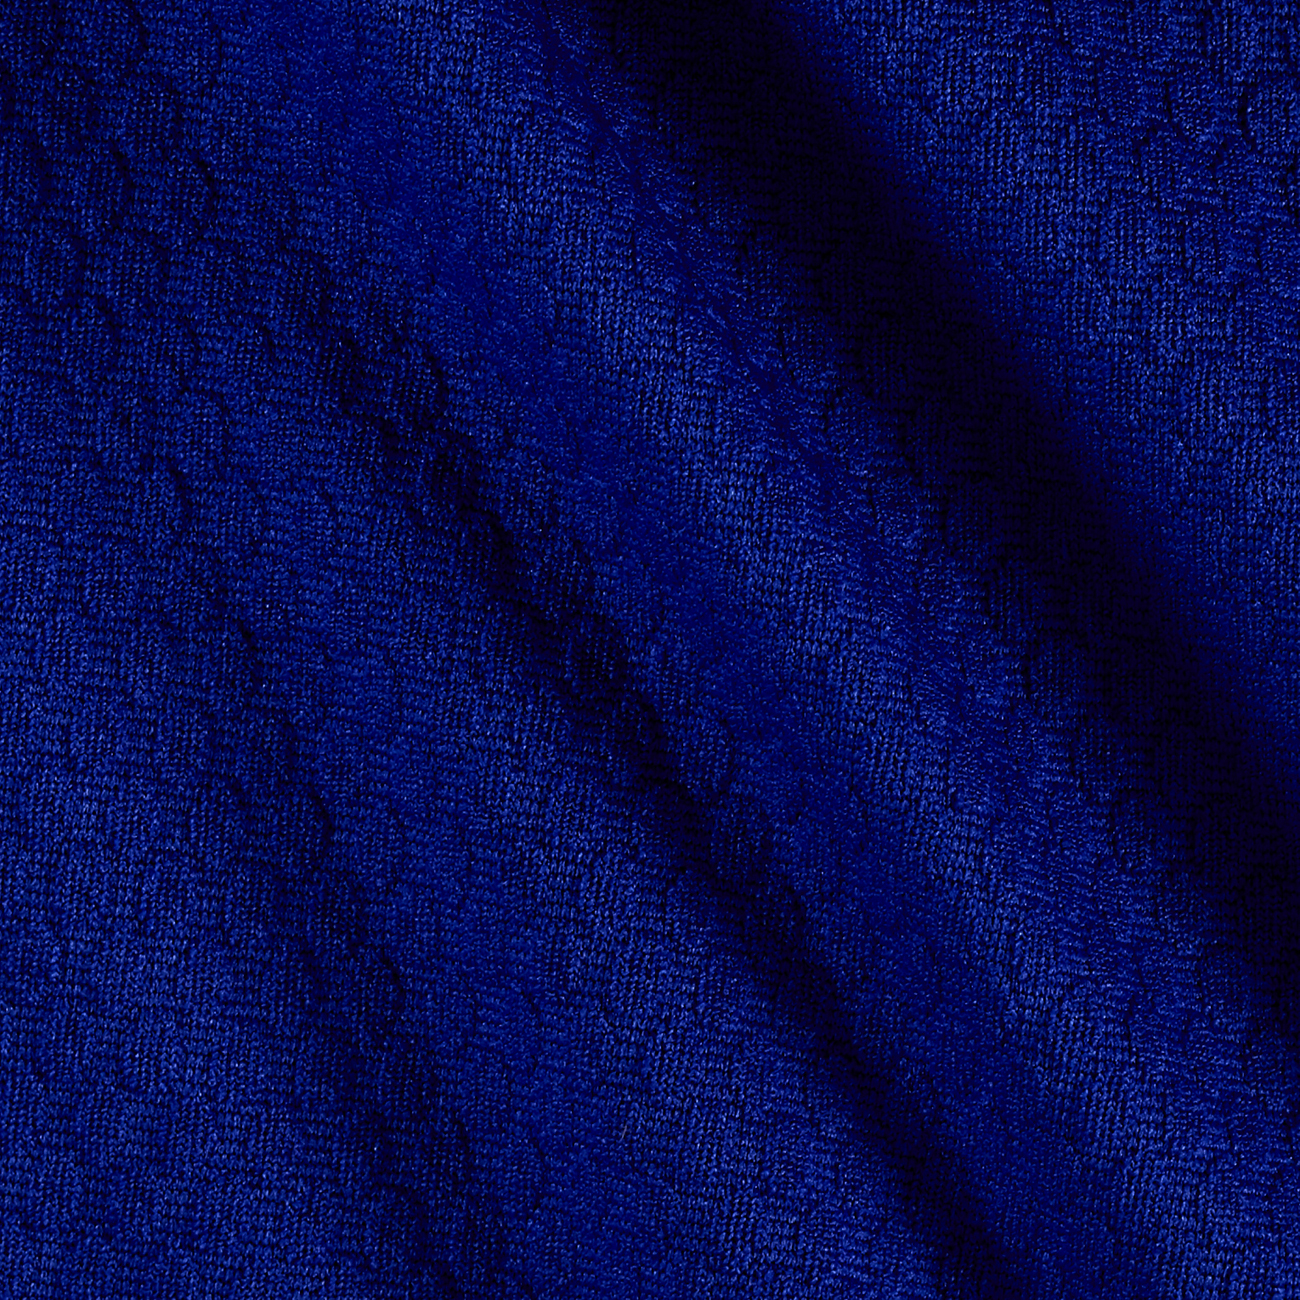 Honeycomb Double Knit Spectrum Blue Fabric by Neiman in USA